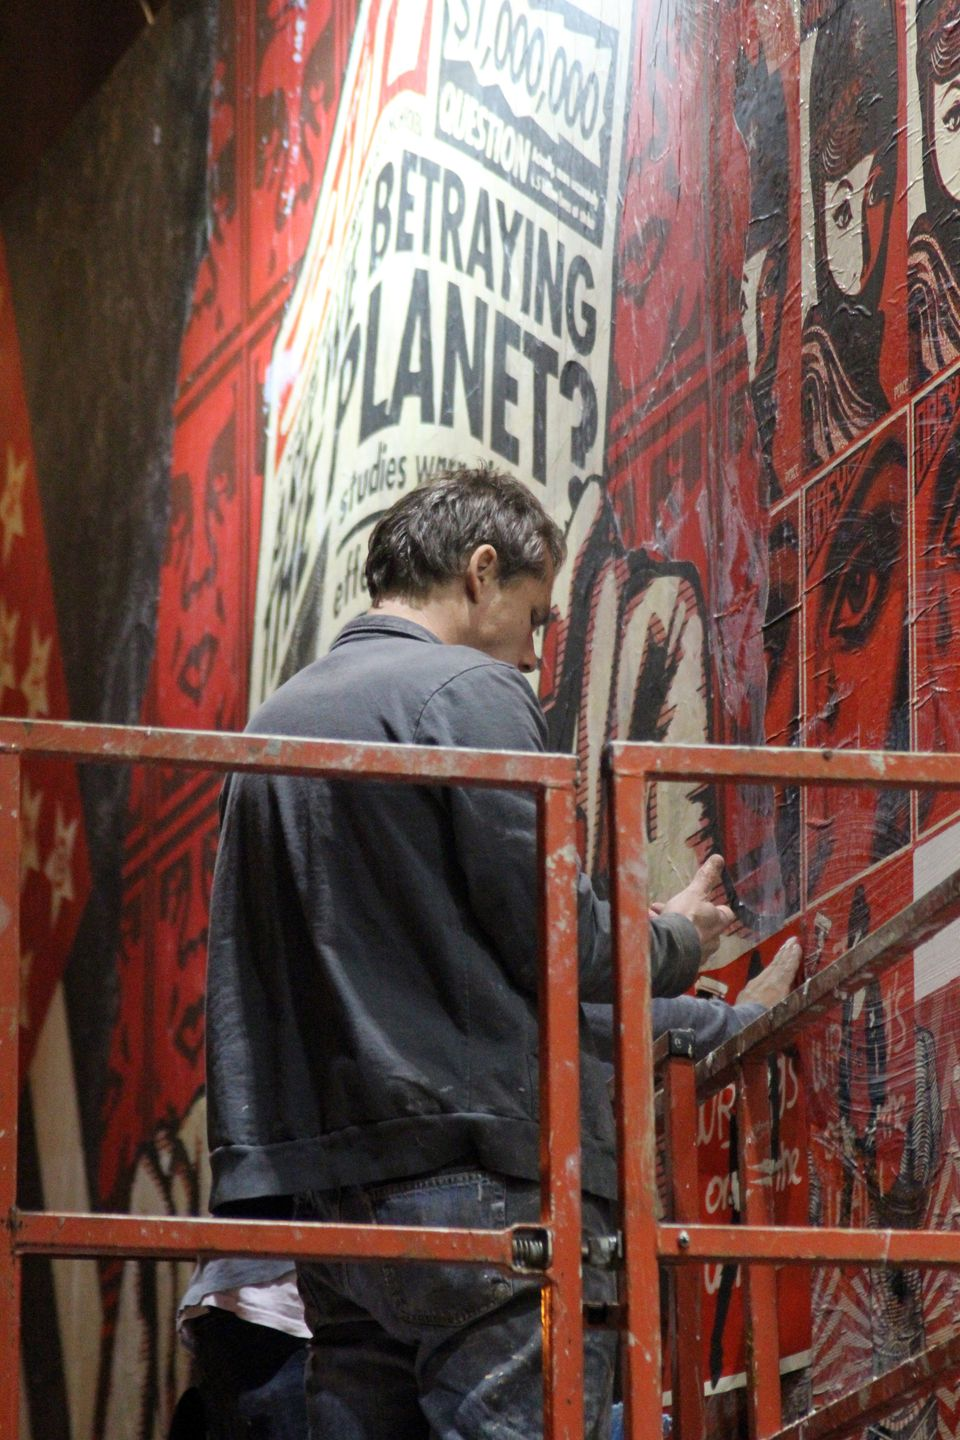 NEW YORK - APRIL 20: Shepard Fairey paints new mural on Deitch Wall on April 20, 2010 in New York City. (Photo by Cory Schwar